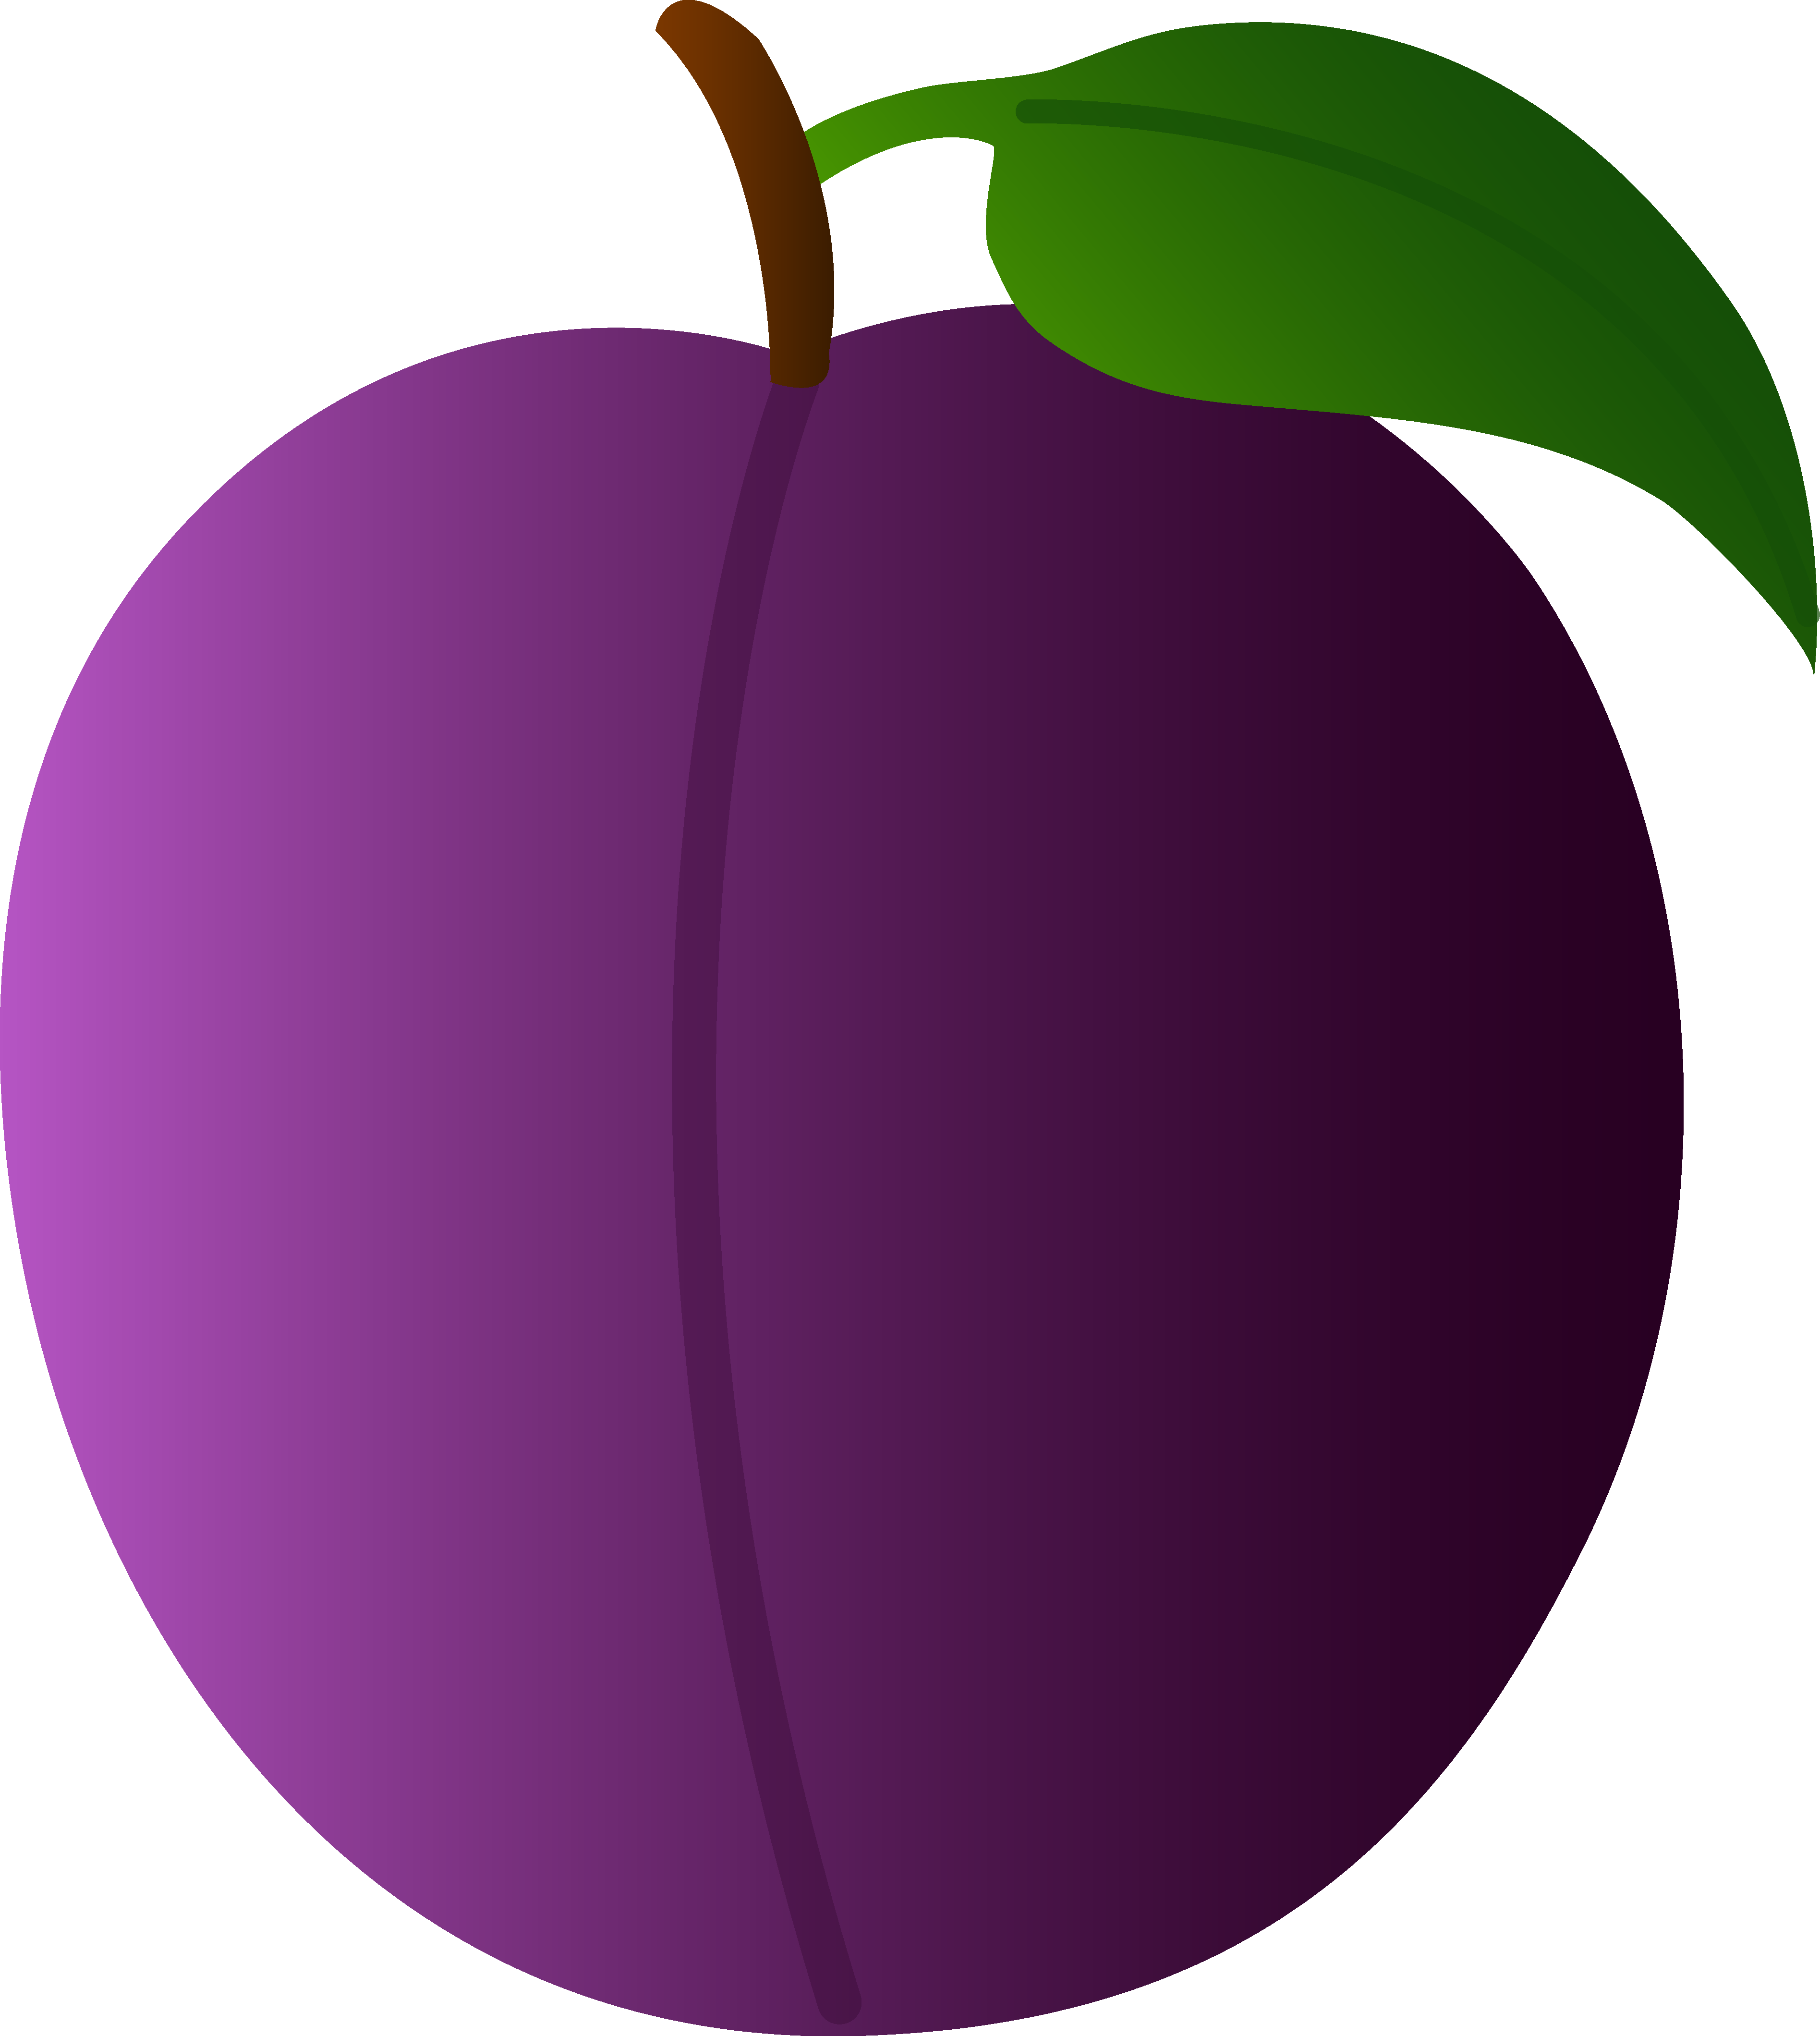 png transparent Violet clipart purple food. Plum free